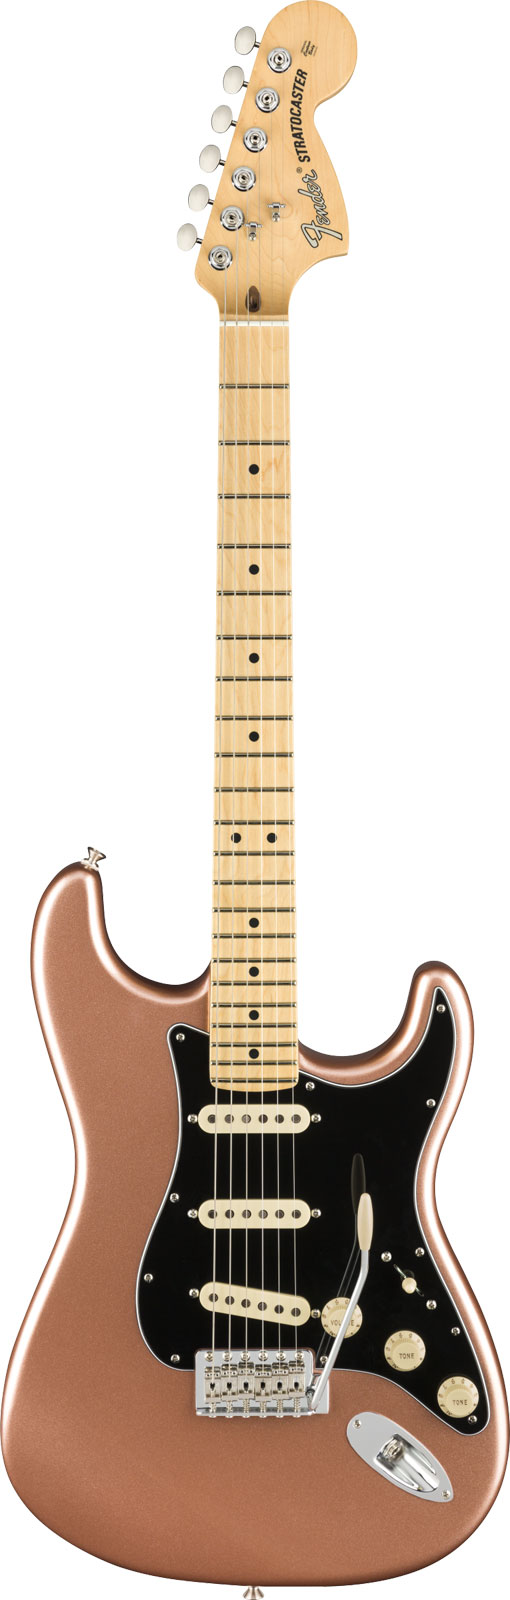 AMERICAN PERFORMER STRATOCASTER MN PENNY